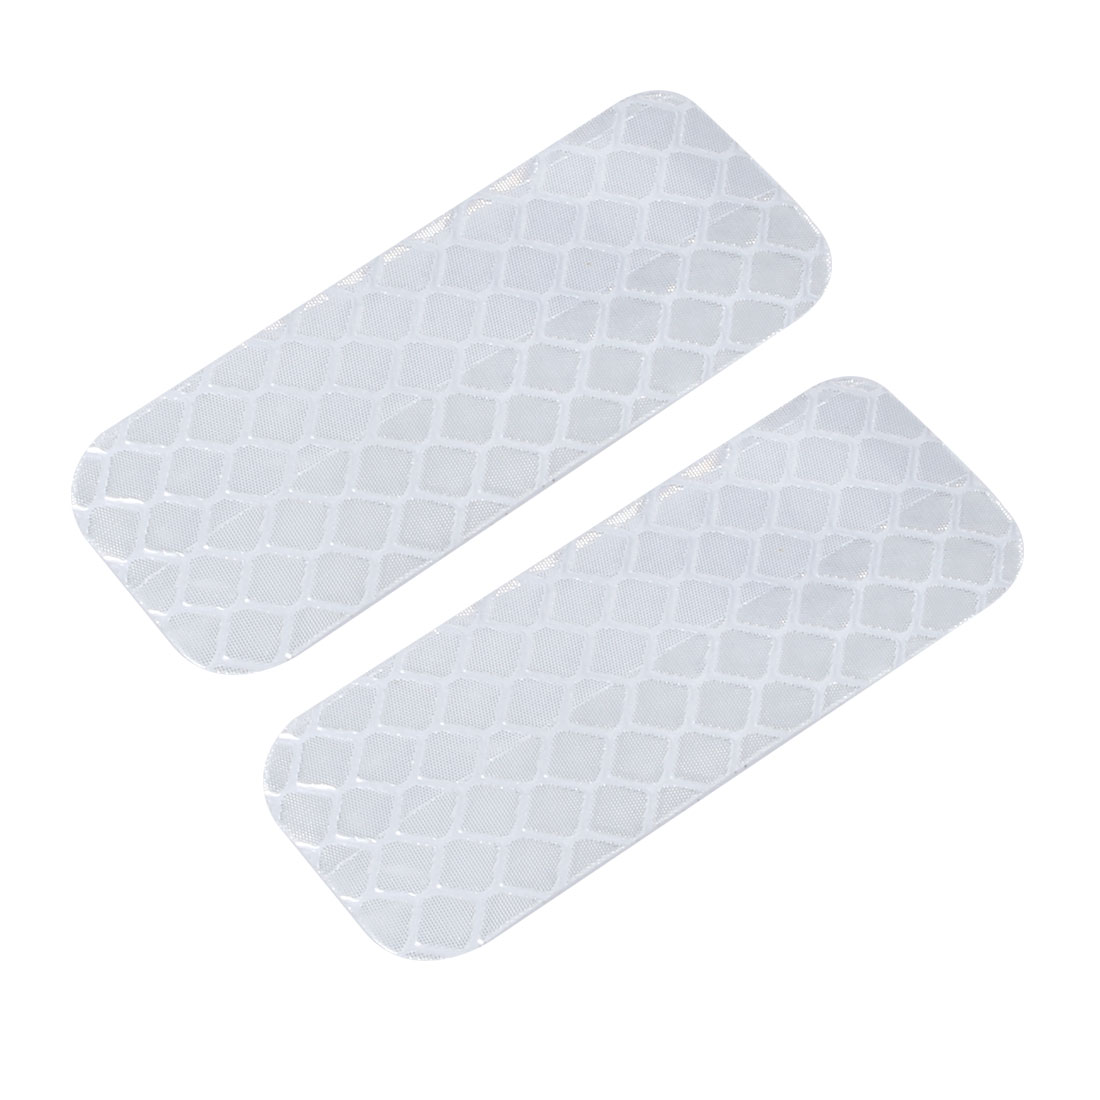 2pcs Honeycomb Reflective Warning Tape Film Sticker White 20mm Width 50mm Length